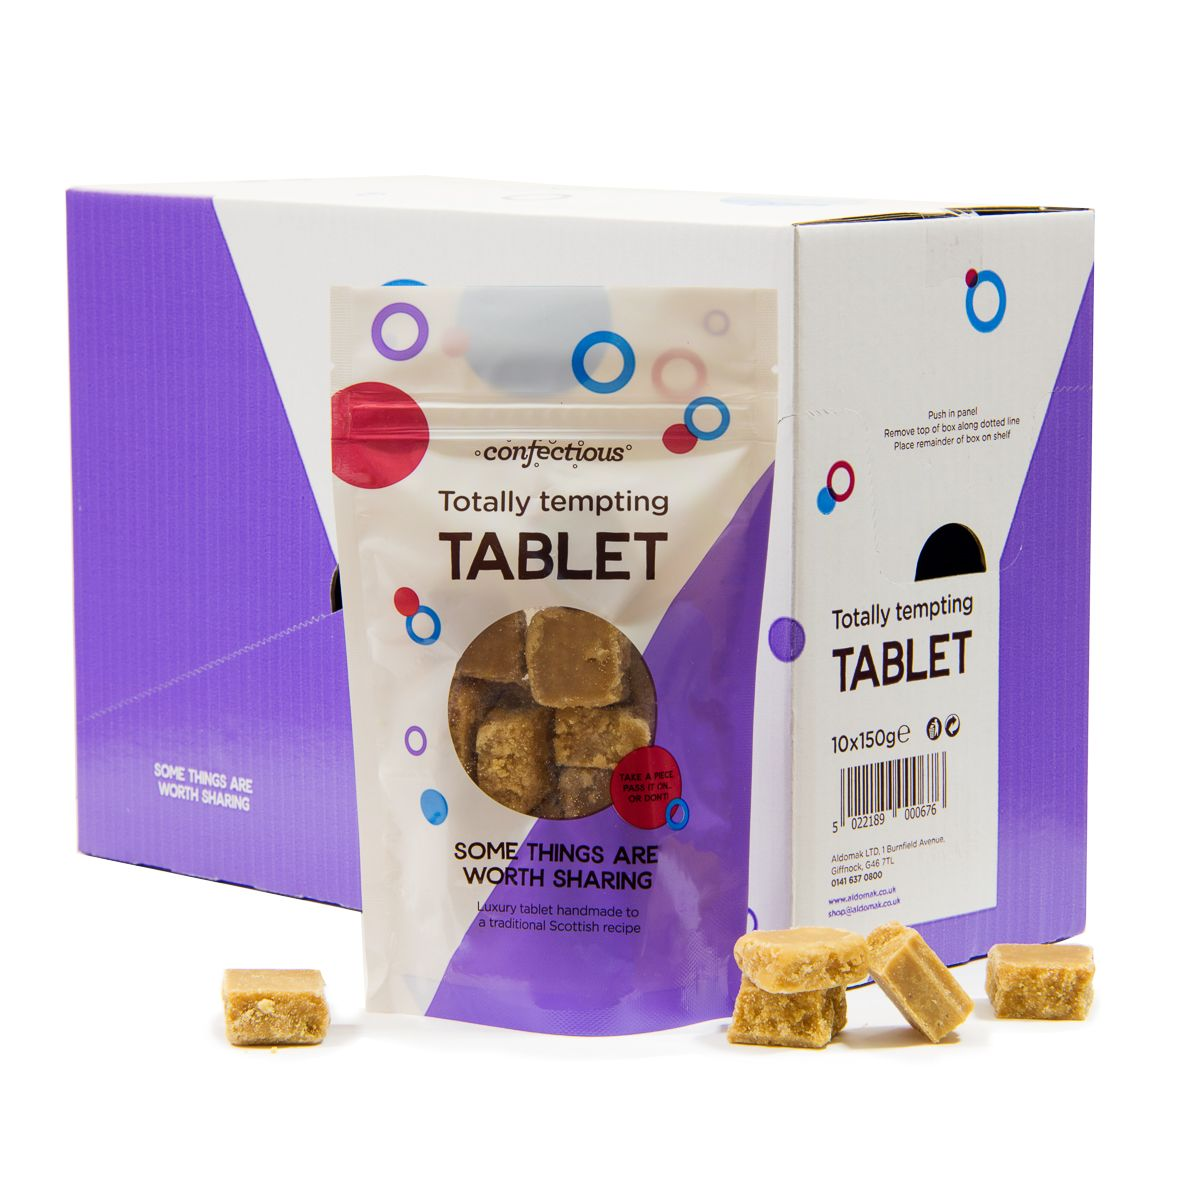 TOTALLY TEMPTING TABLET (10 X150G)